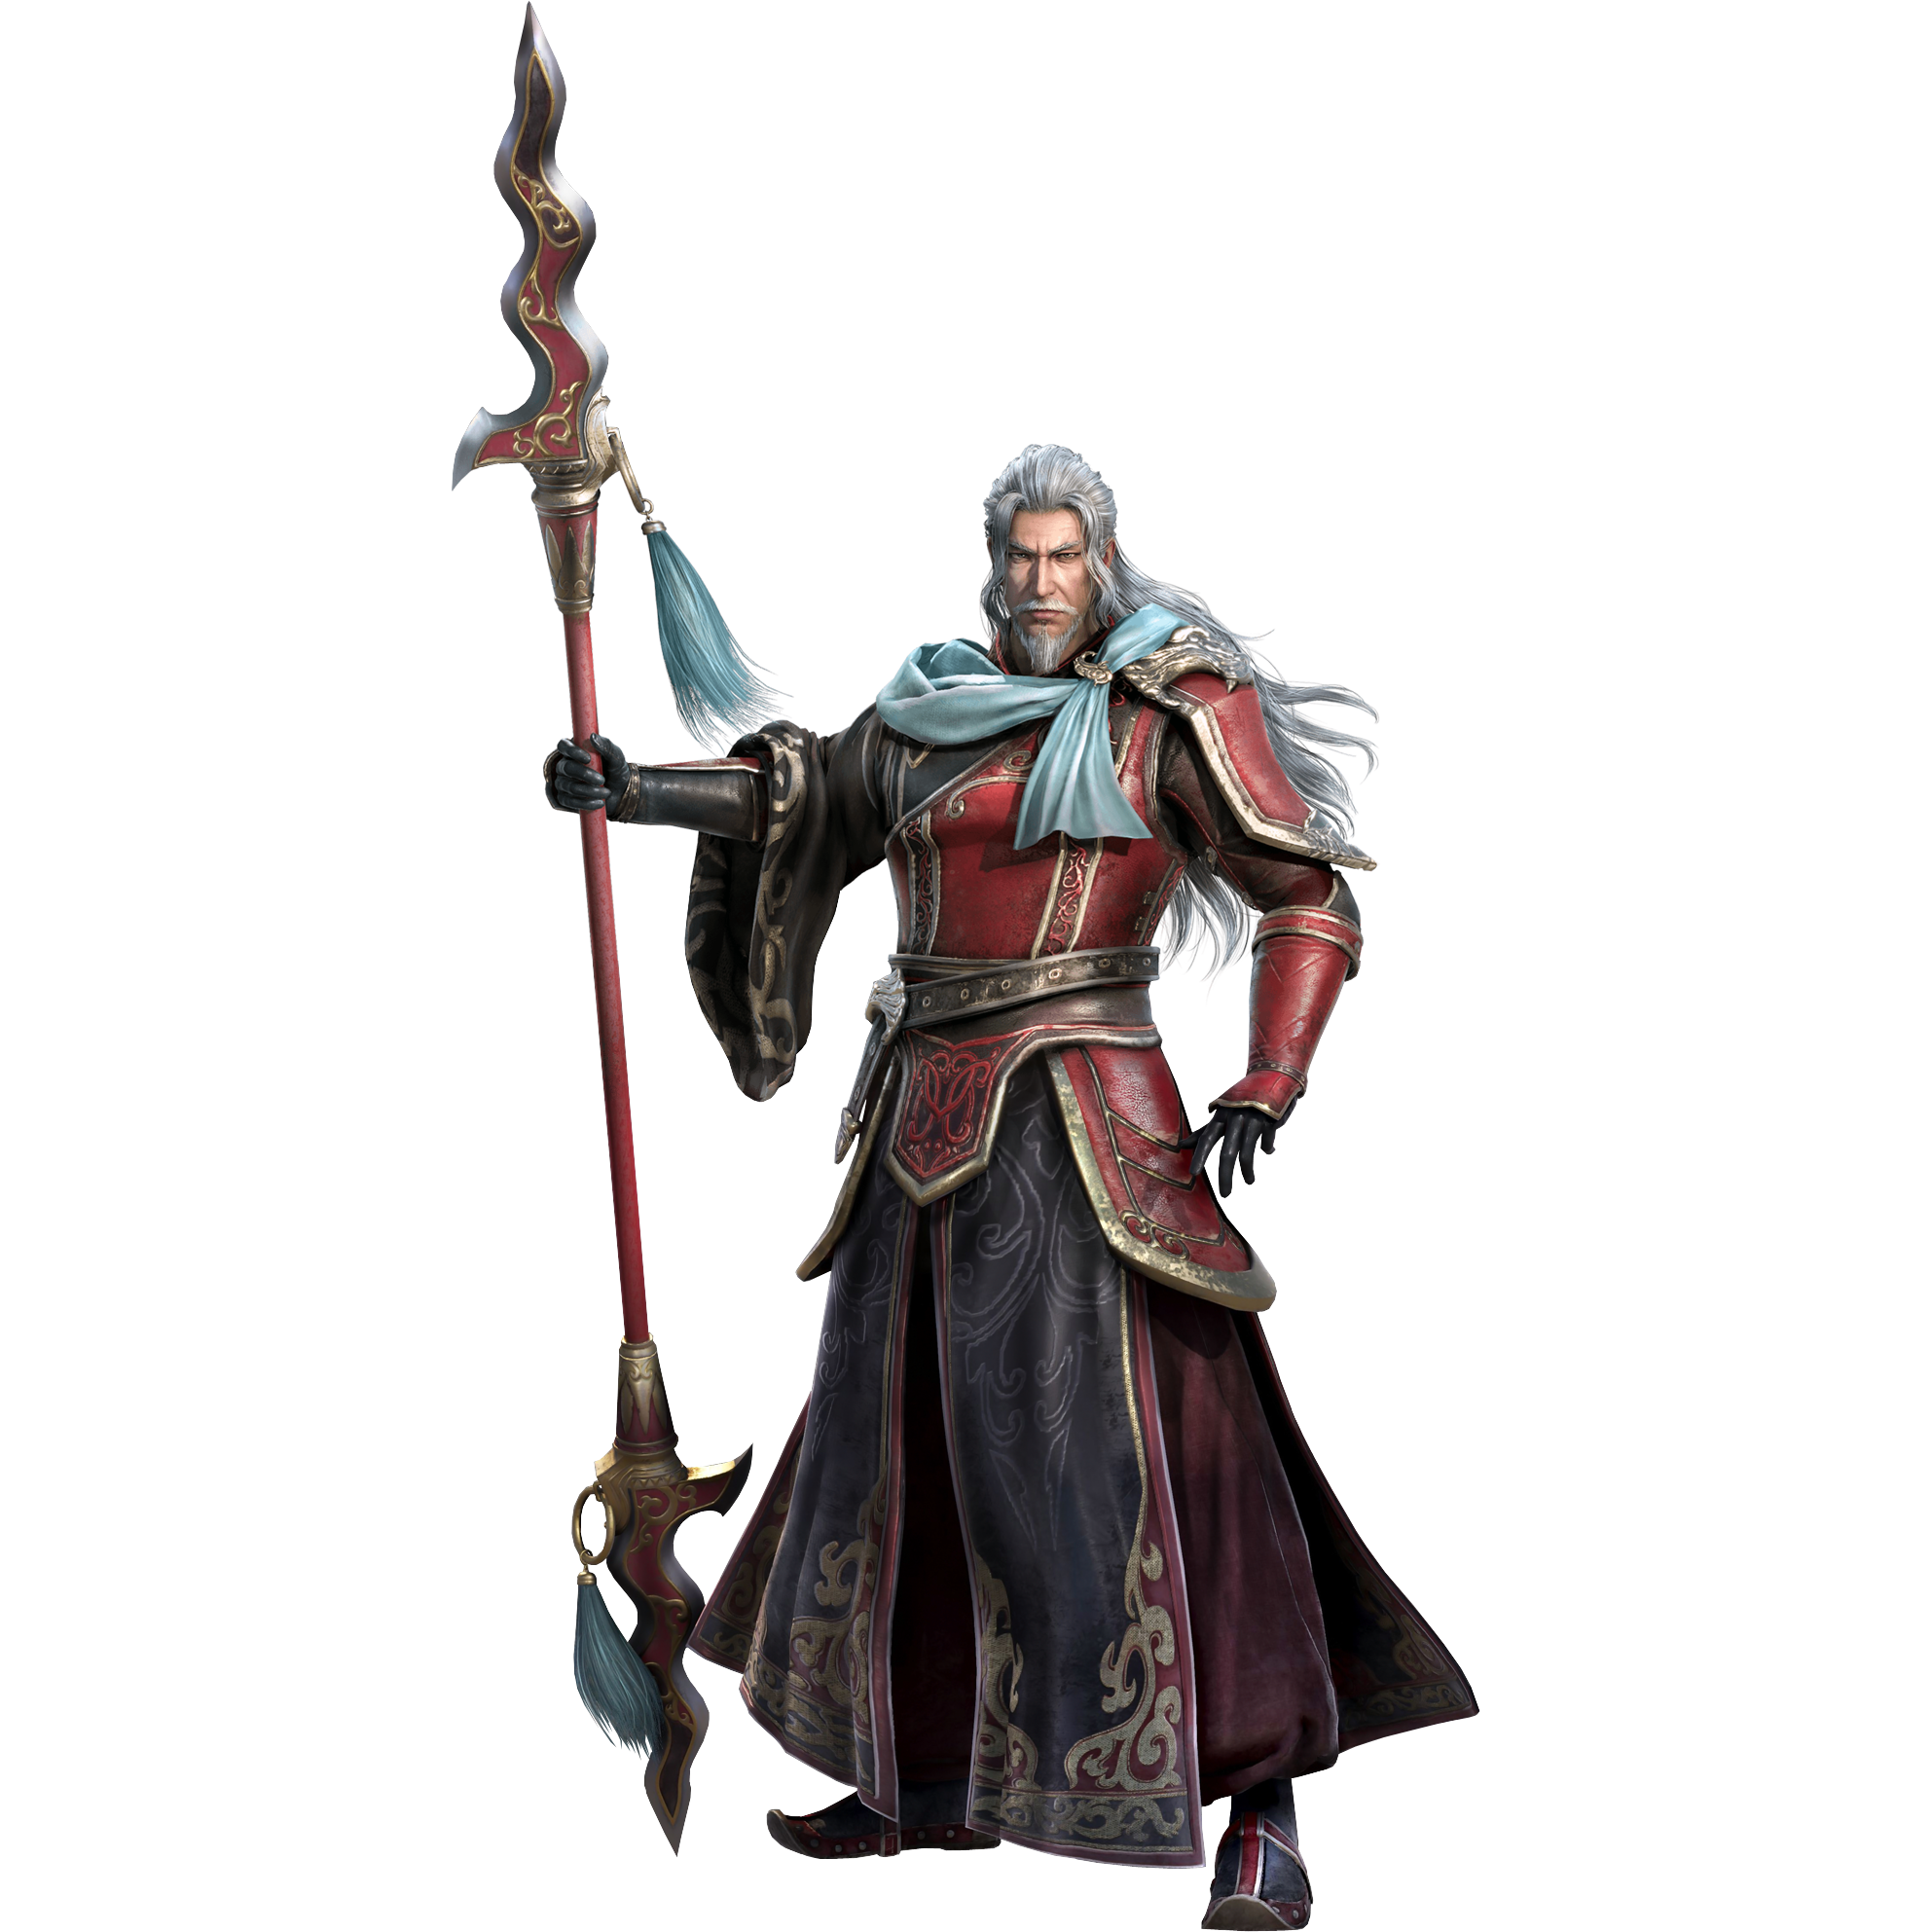 User blog:Android2580/Romance of the Three Kingdoms characters with